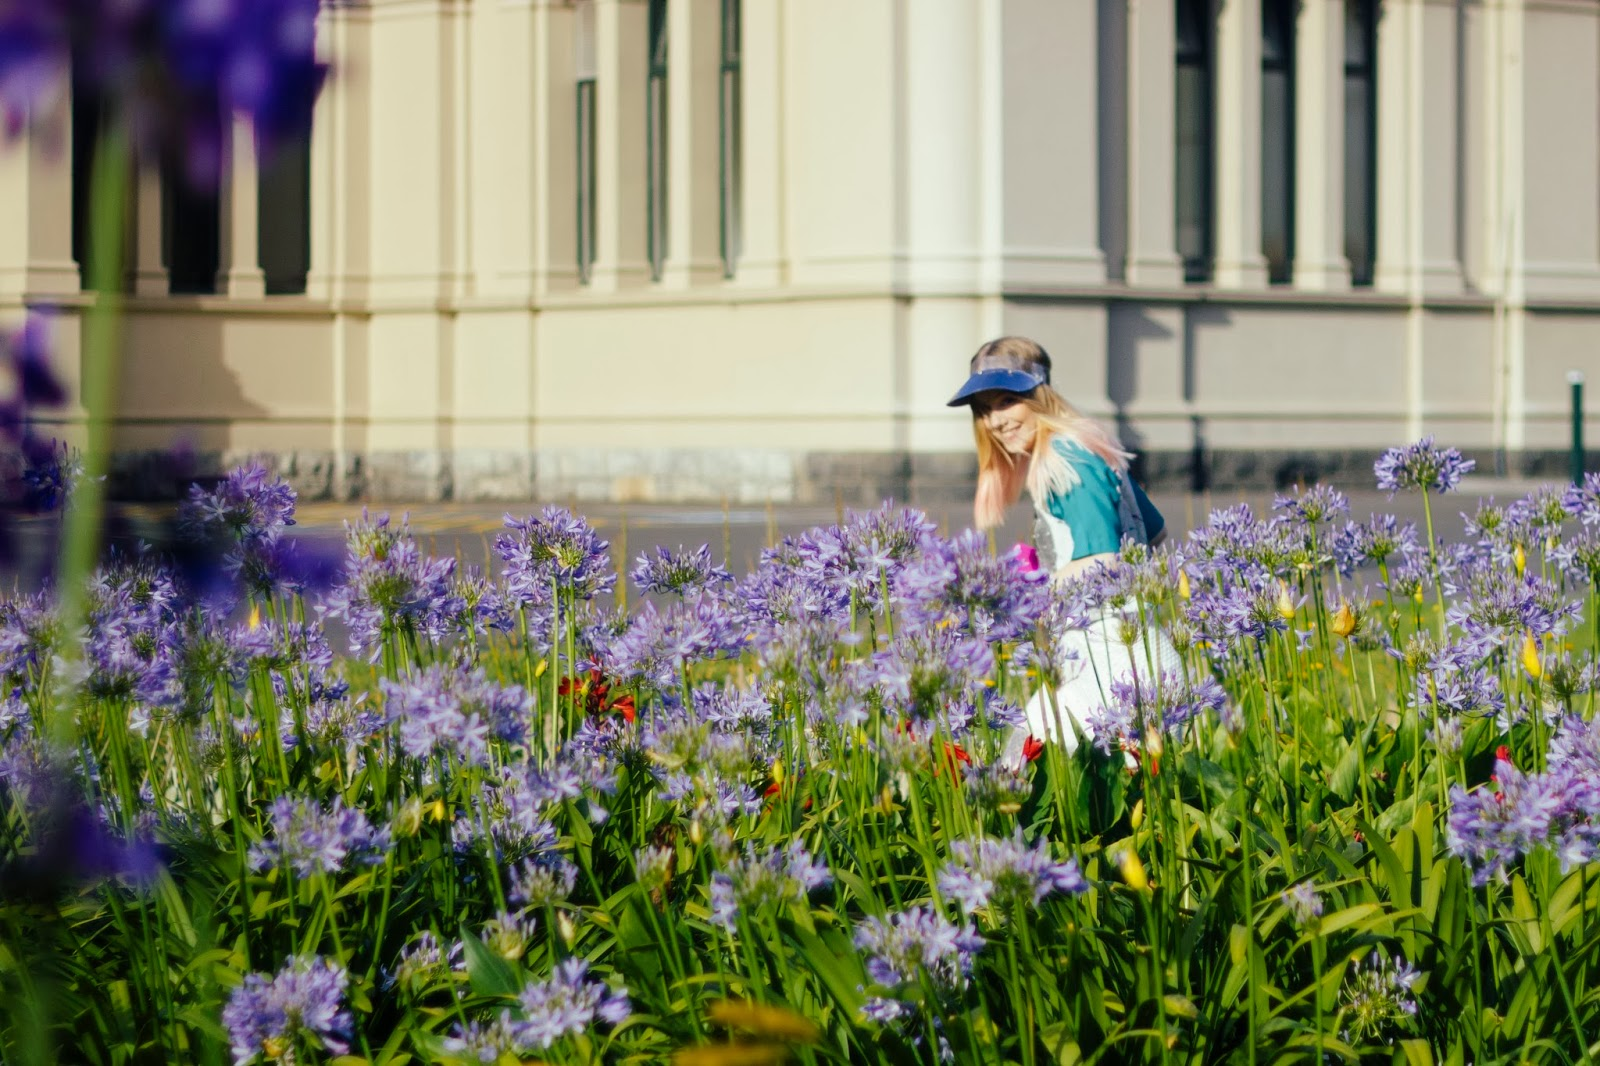 outside is colours, outsideiscolours, outside is colors, outsideiscolors,girl running in flowers, carlton gardens,